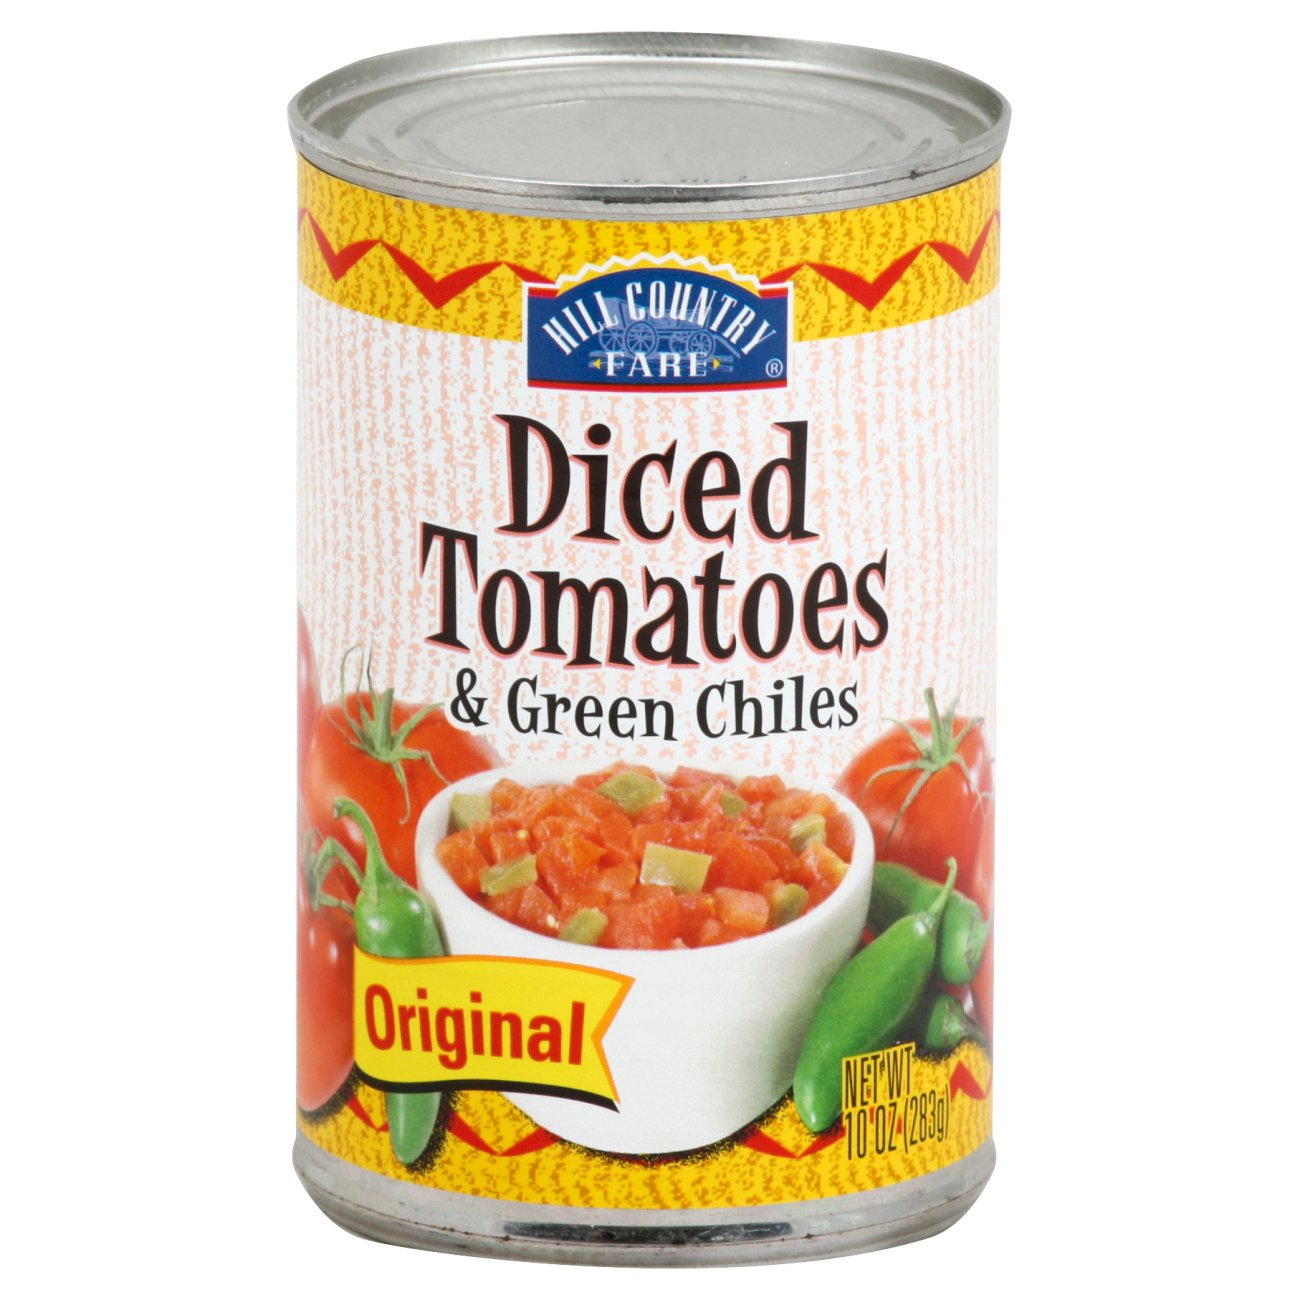 Diced Tomatoes & Green Chiles ‑ Shop